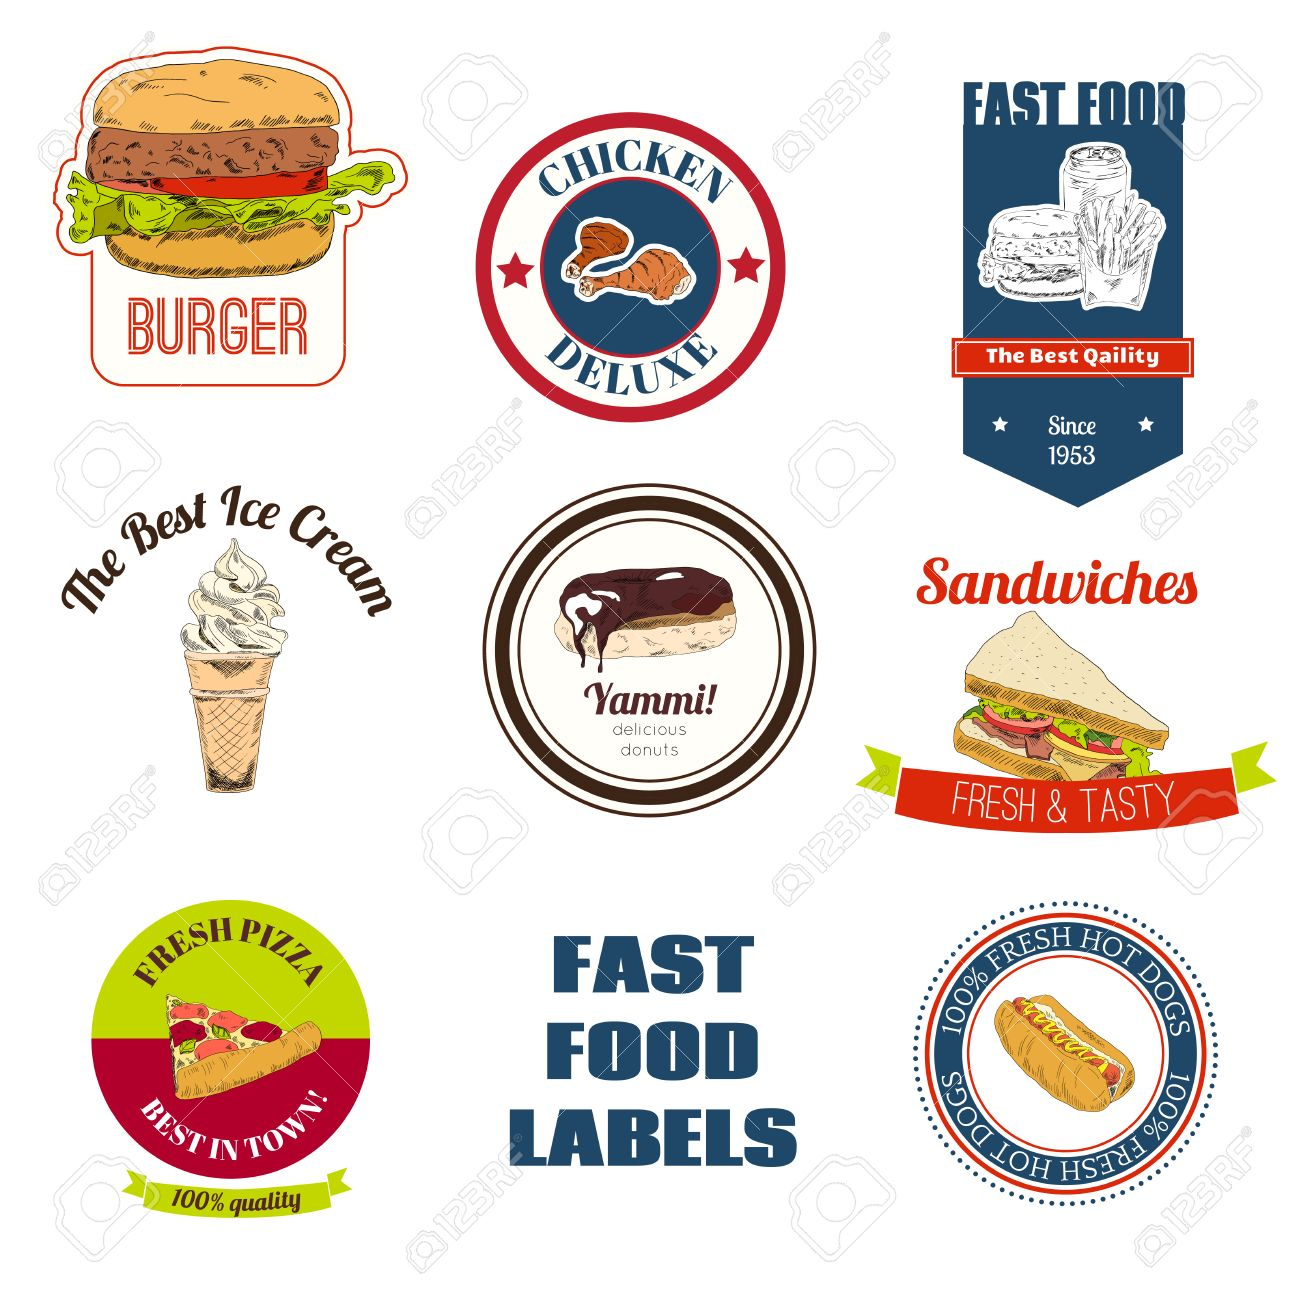 Decorative Fast Food Restaurants And Speed Service Shops Takeaway Chicken Pizza Hotdog Labels Collection Isolated Vector